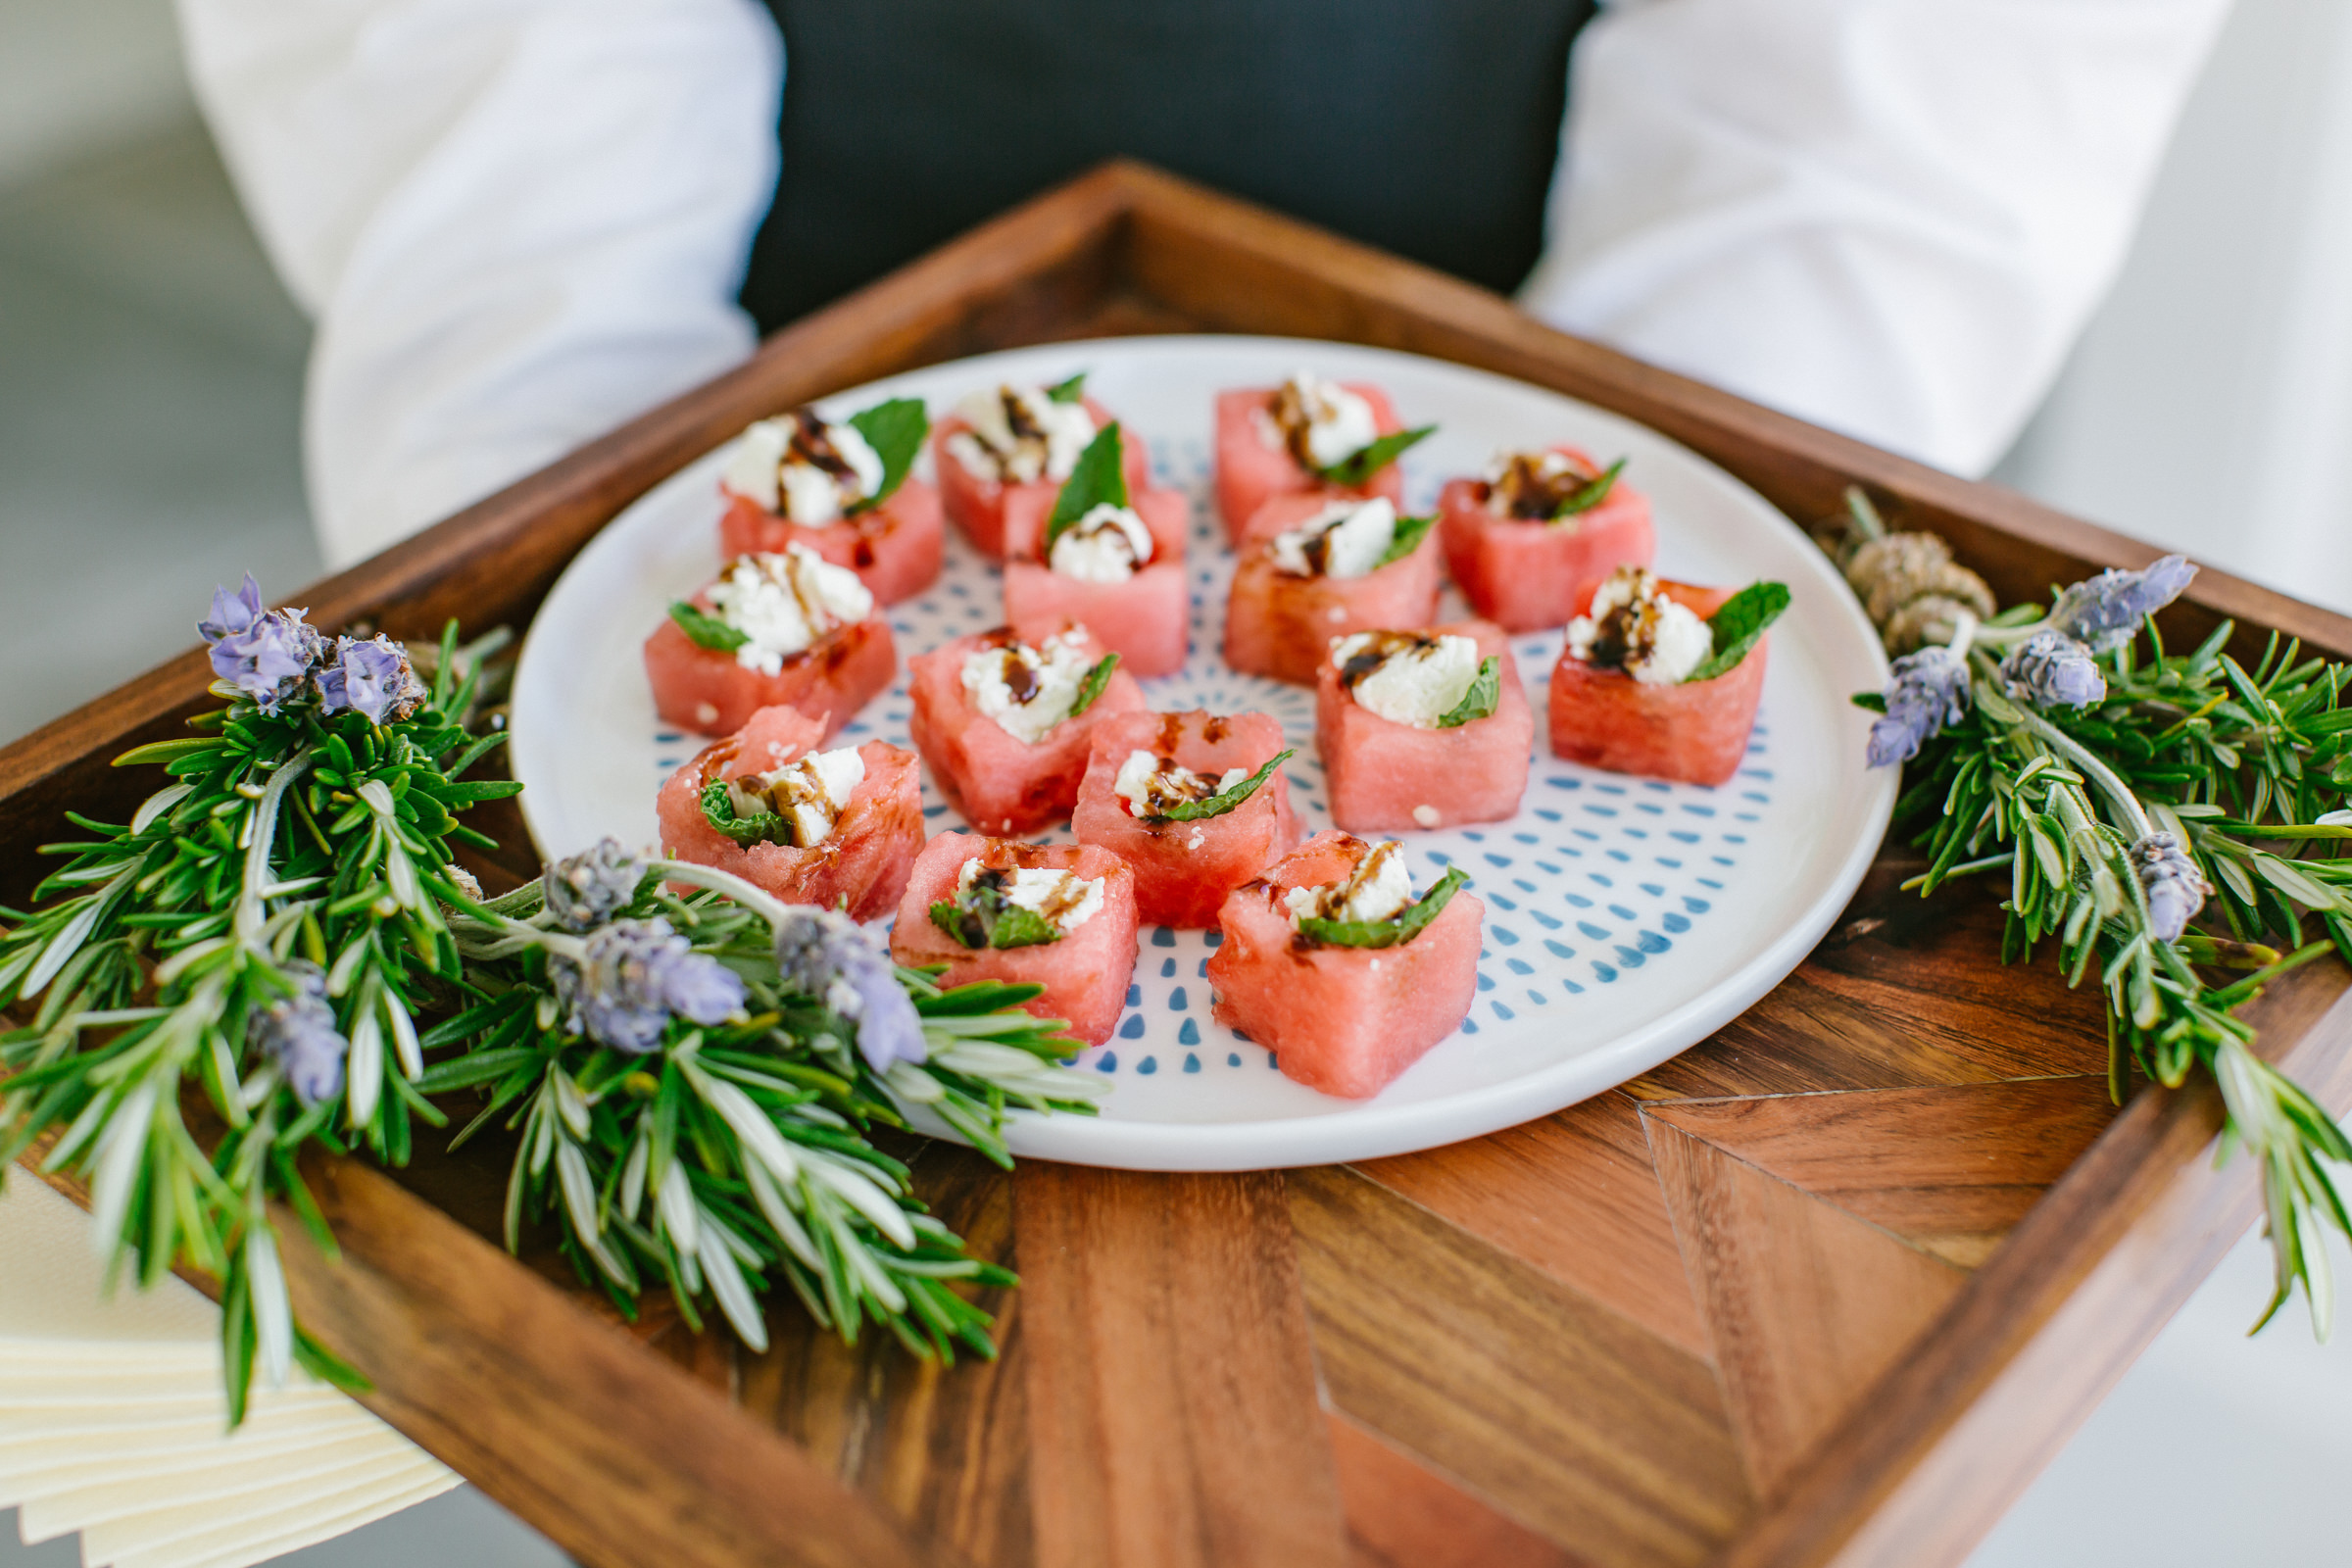 Tuna hors d'oeuvres offered on tray with rosemary garnish - photo by Amy and Stuart Photography